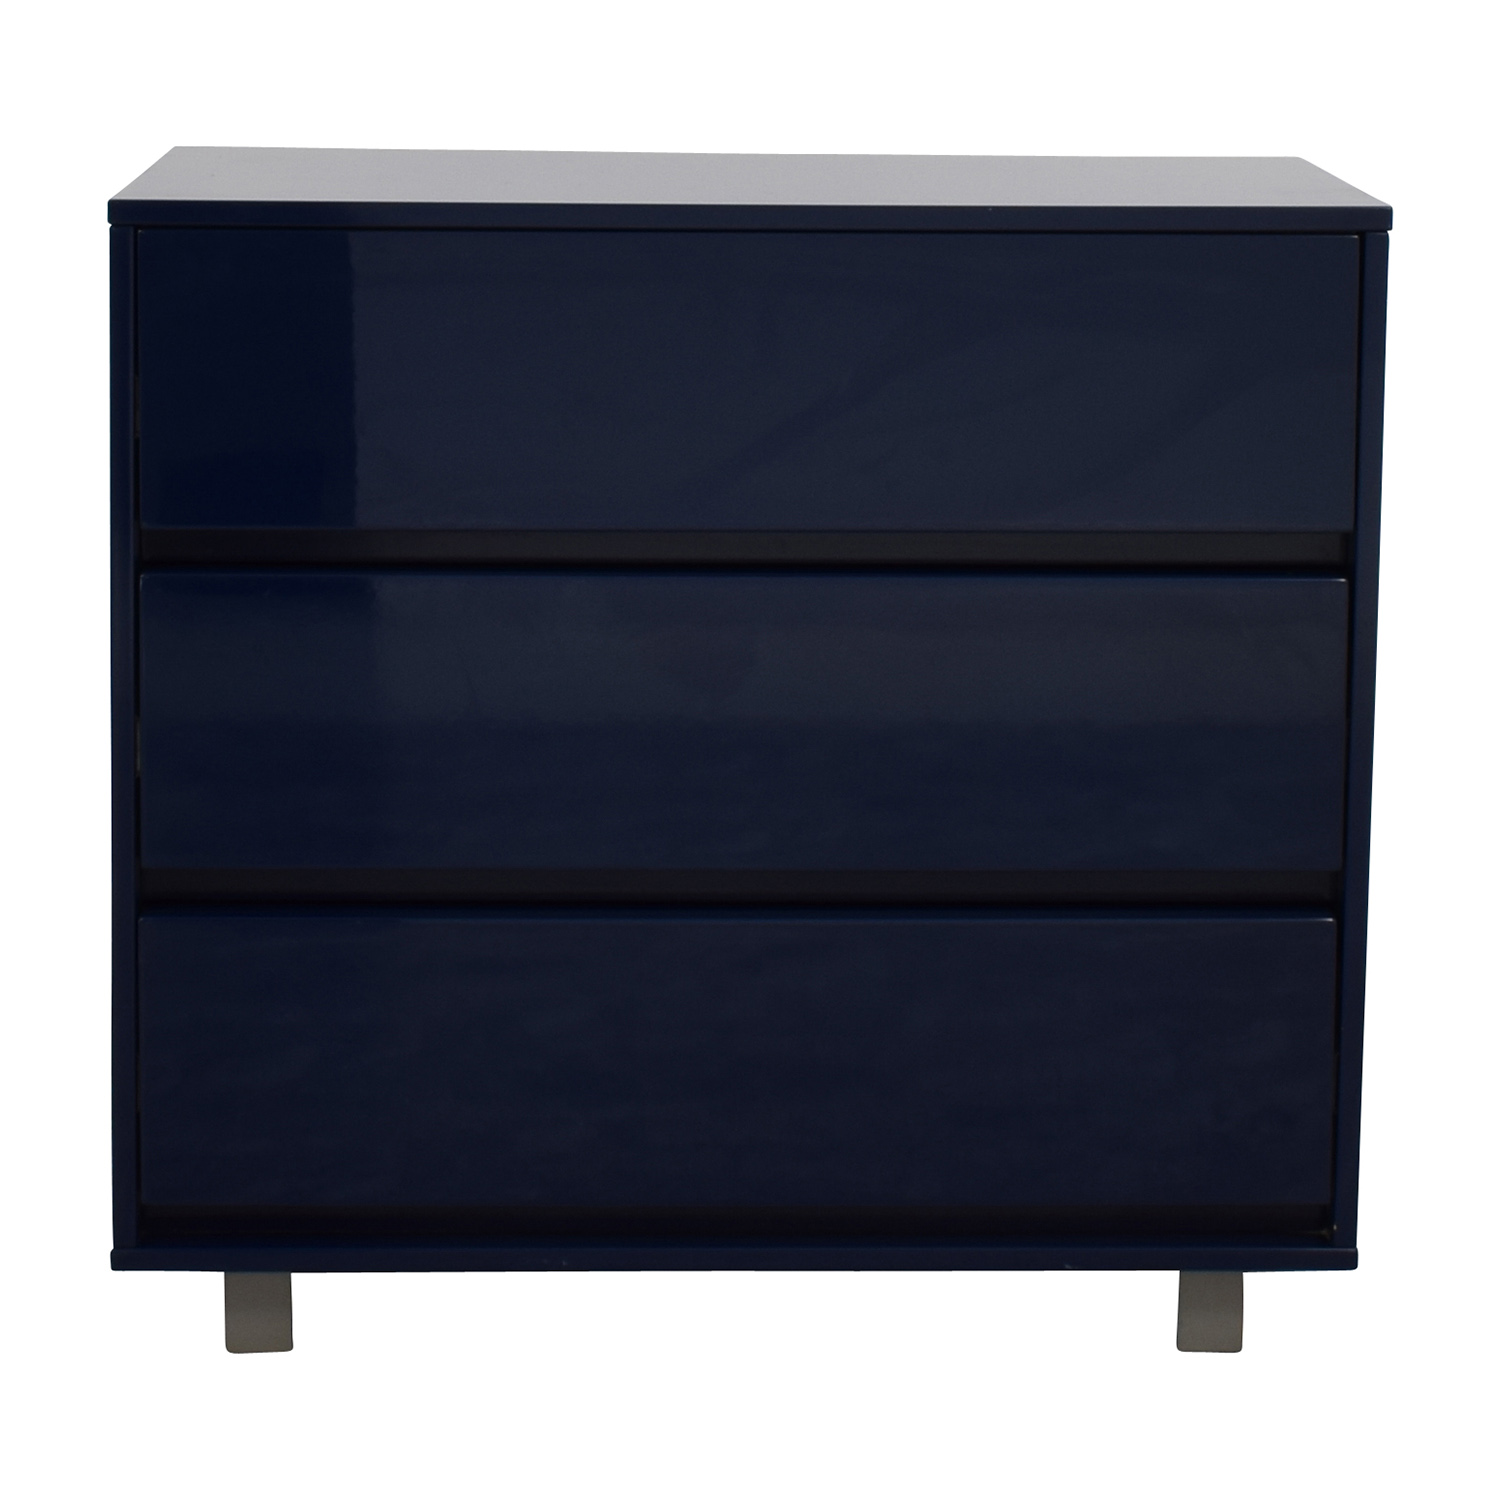 CB2 CB2 Shop Blue Chest for sale